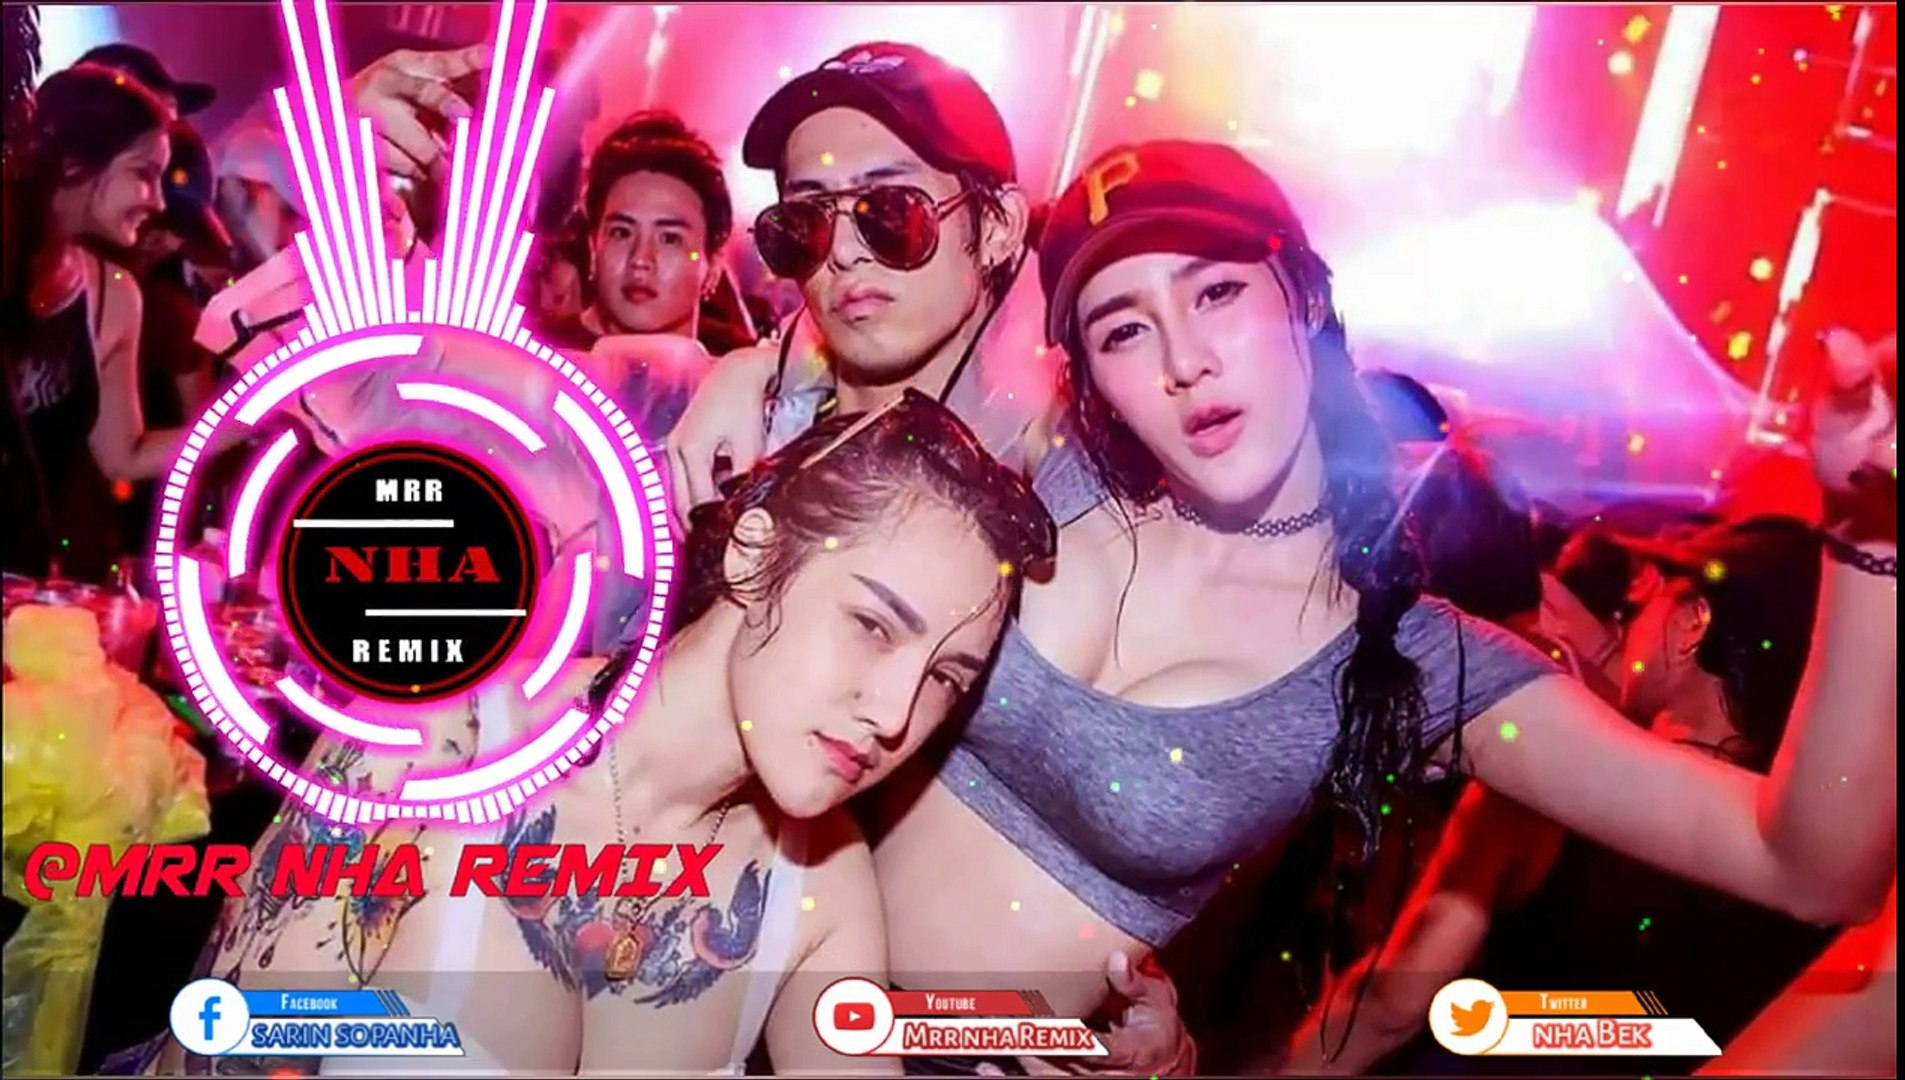 Best music Melody Remix { Club Dancing 2018 } For Kmer New Years Pop Music Videos product by Nha